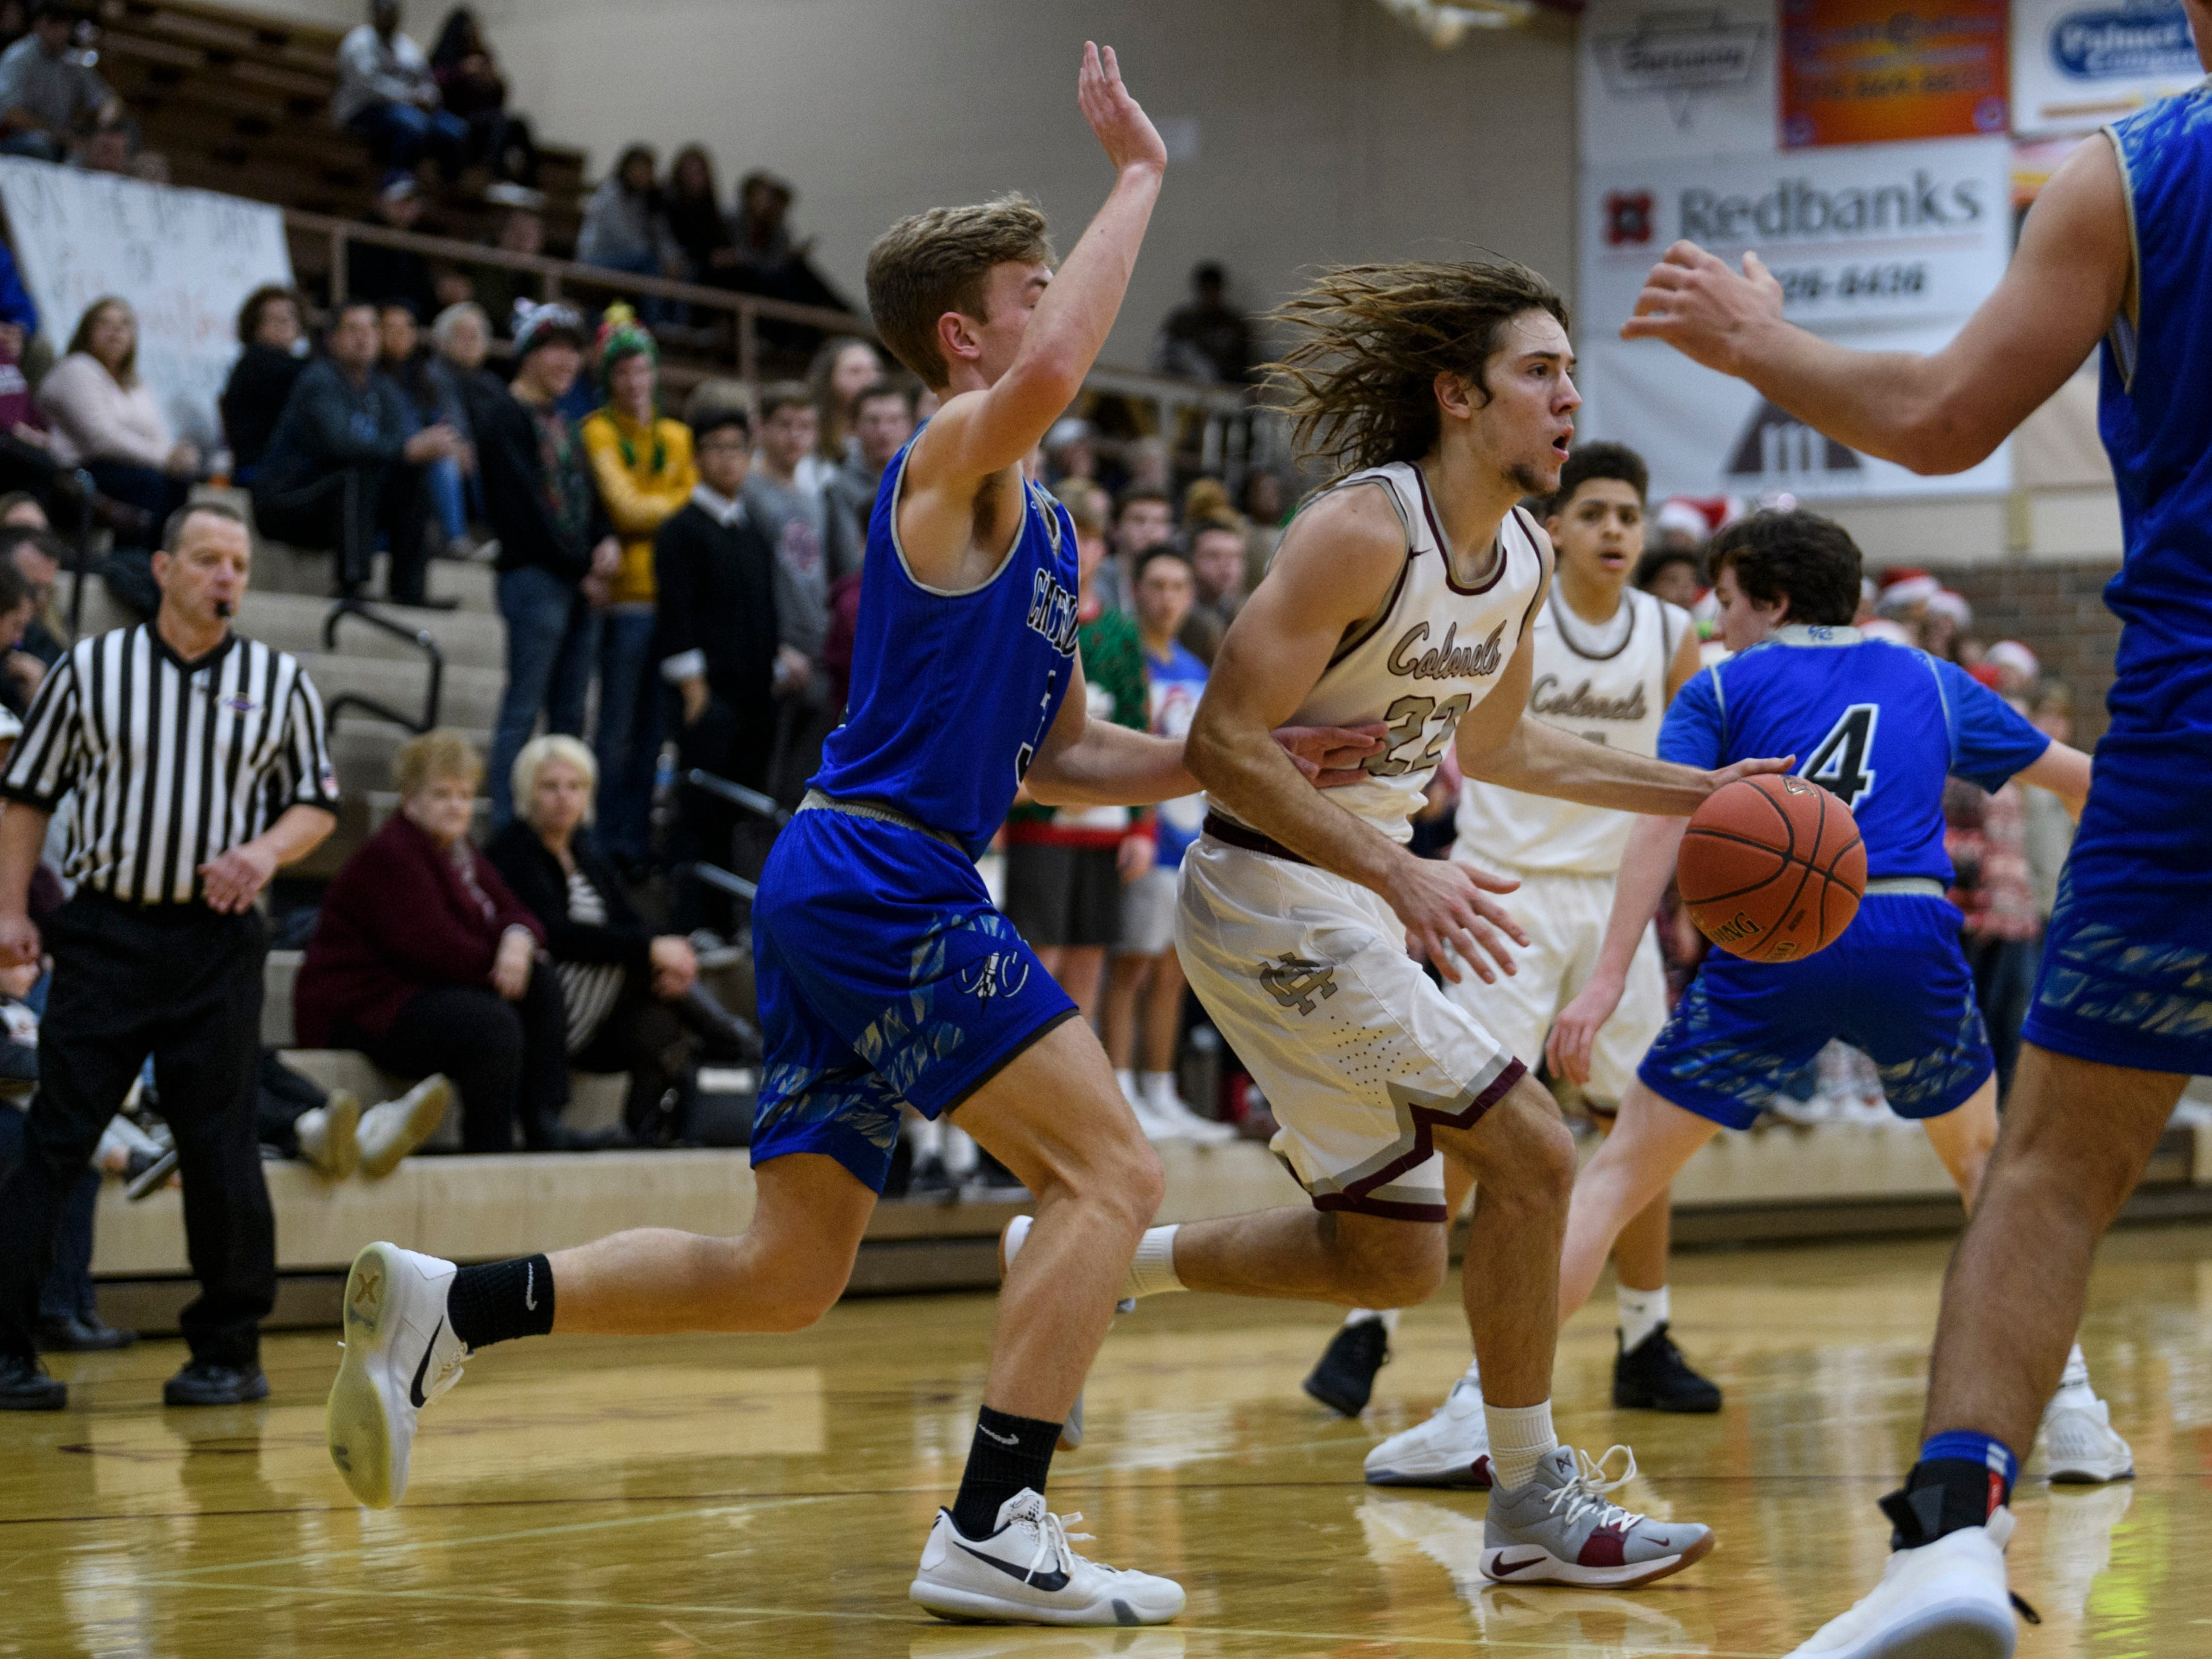 Henderson's Nick Cissell (22) dribbles past Crittenden County's Sawyer Towery (3) during the first quarter at  Henderson County High School in Henderson, Ky., Tuesday, Dec. 18, 2018. The Colonels defeated the Rockets 88-52.